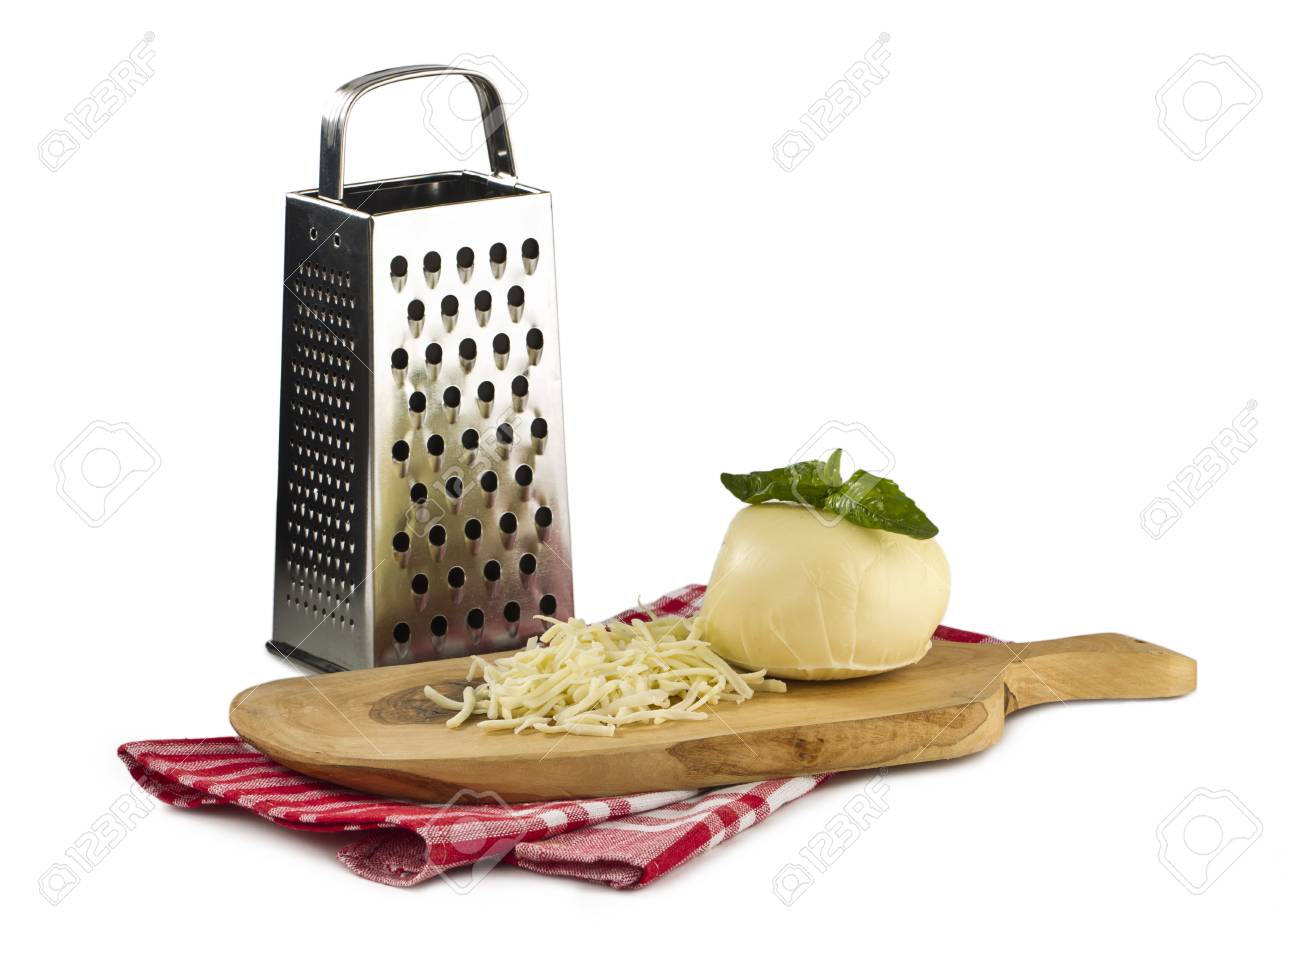 Image of Grated cheese on wooden board Stock Photo - 16225765